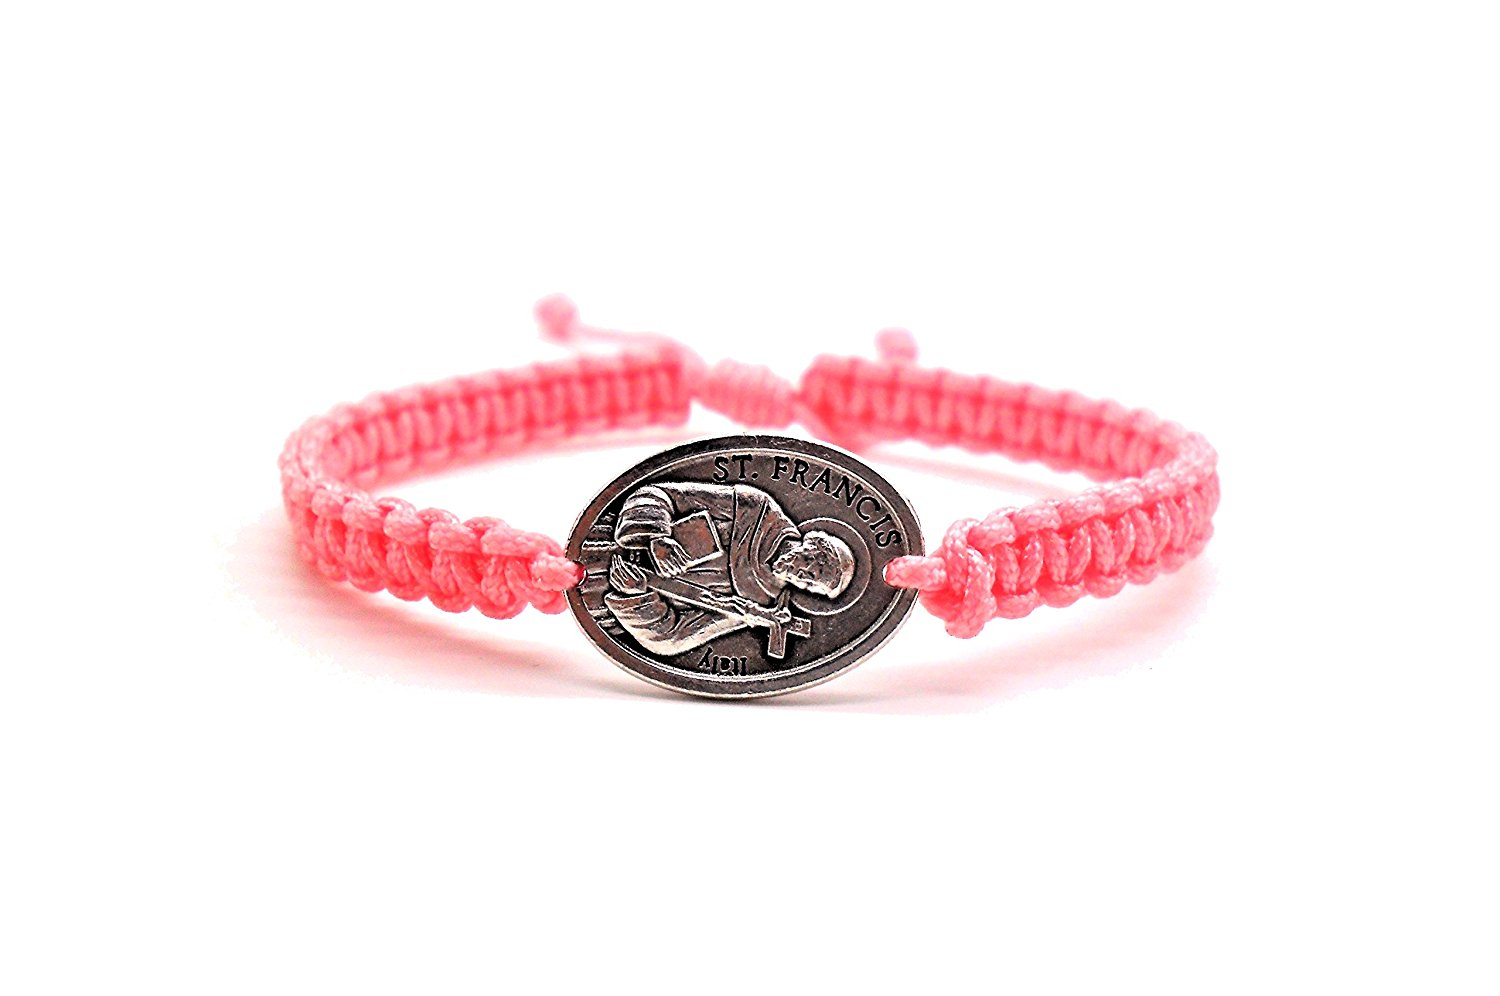 Benedict Gifts Catholic St. Francis (One side) & Pope Francis (Other side) Blessing Bracelet on Pink Cord, Catholic bracelet, Gift Bracelet, Handmade Bracelet